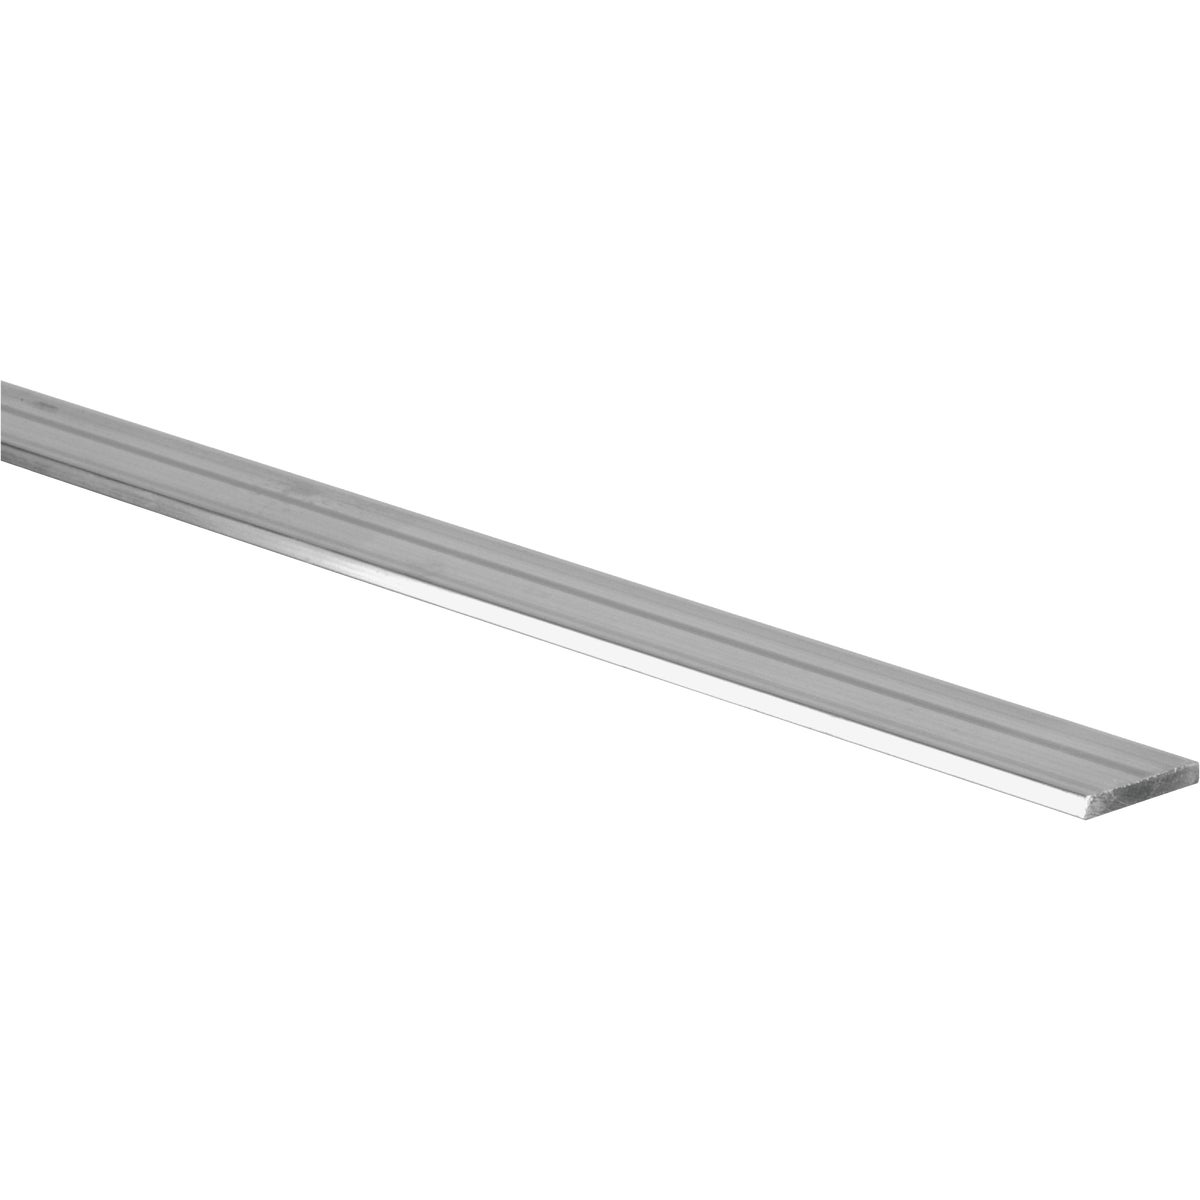 1X1/8X3' ALUMINUM BAR - N341594 by National Mfg Co